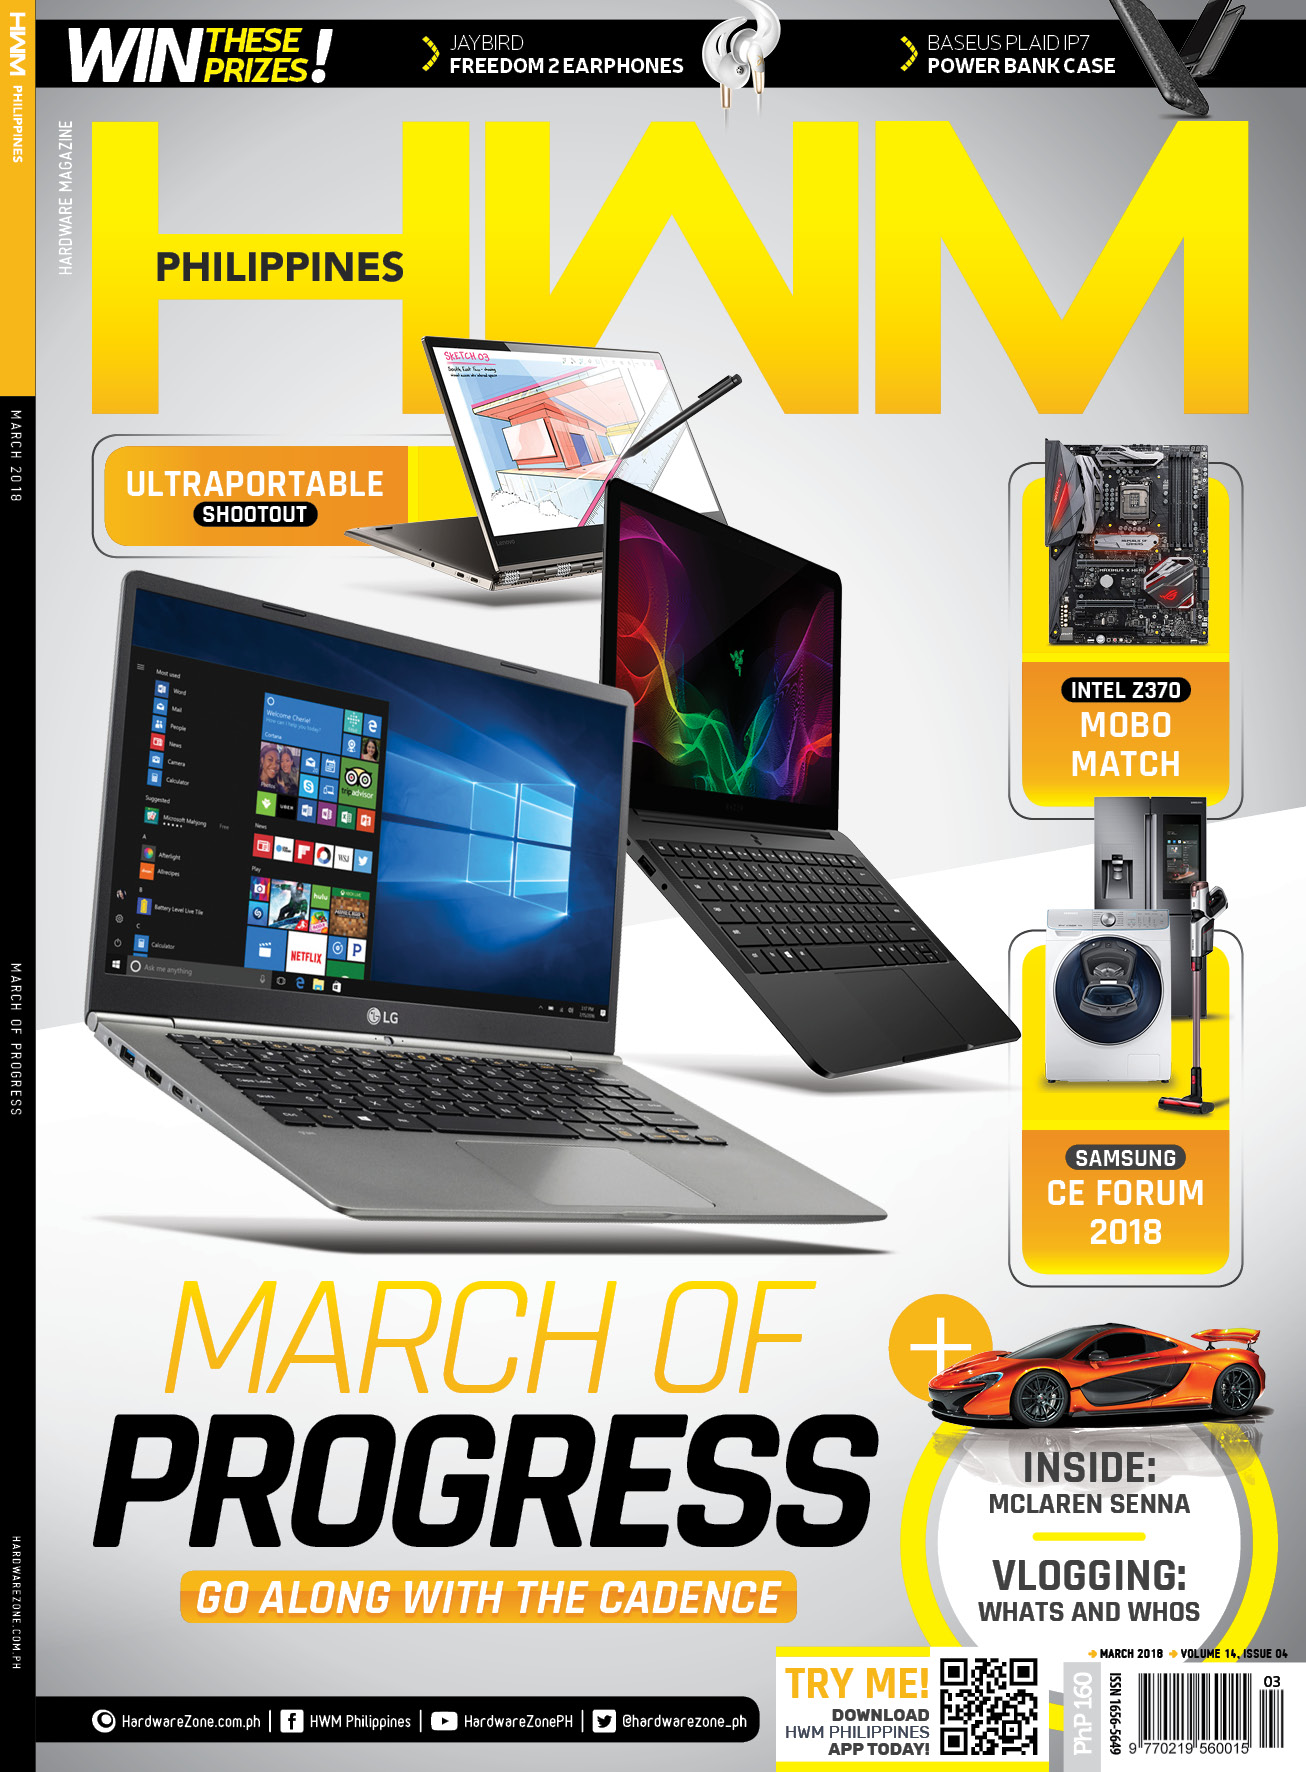 mwc 2018, barcelona, hwm, philippines, samsung, ces 2018, intel z370, motherboards, ultraportables, amd, ryzen 3, asus, zephyrus, fitbit ionic, oppo a83, seagate, barracuda, magazine, print